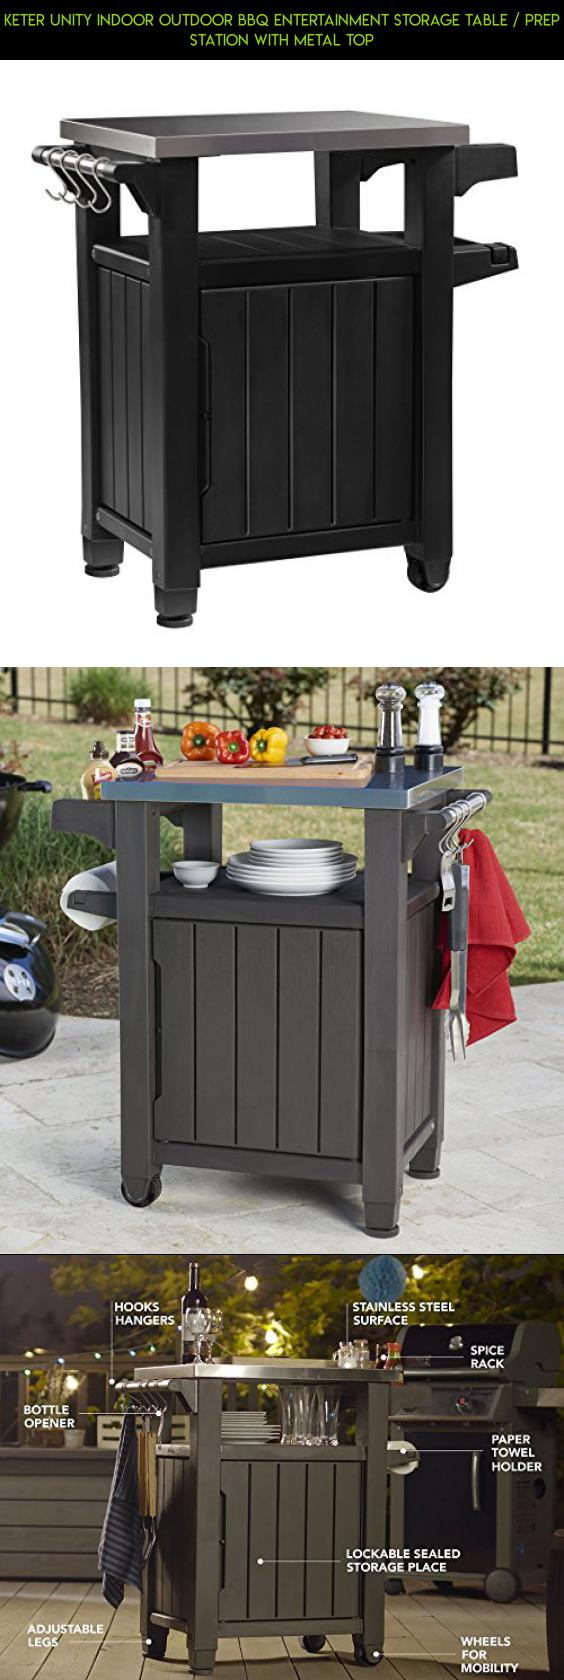 Keter Unity Indoor Outdoor BBQ Entertainment Storage Table / Prep Station  With Metal Top #camera